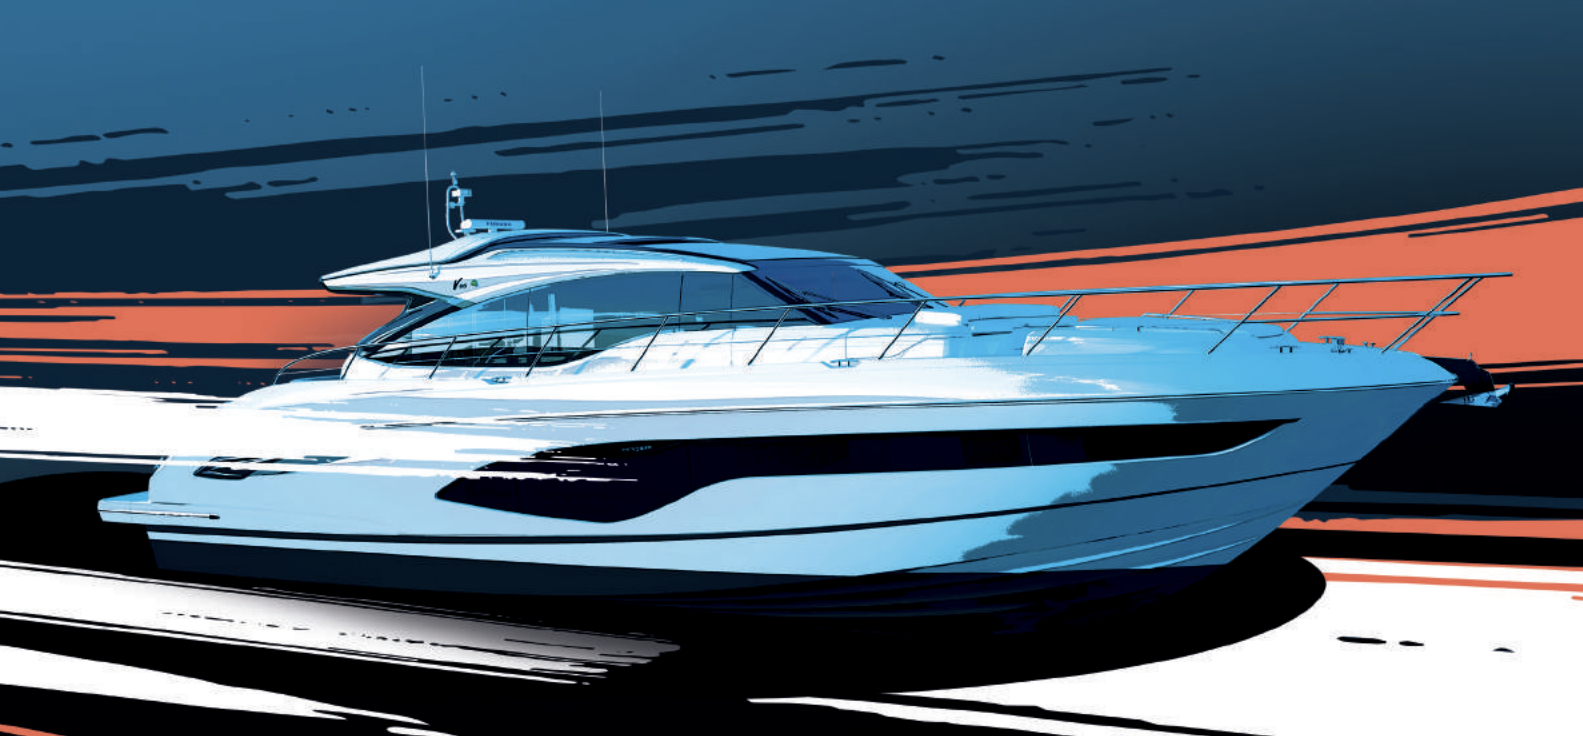 Bsur Brings Colorful Fresh Approach In Latest Princess Yachts